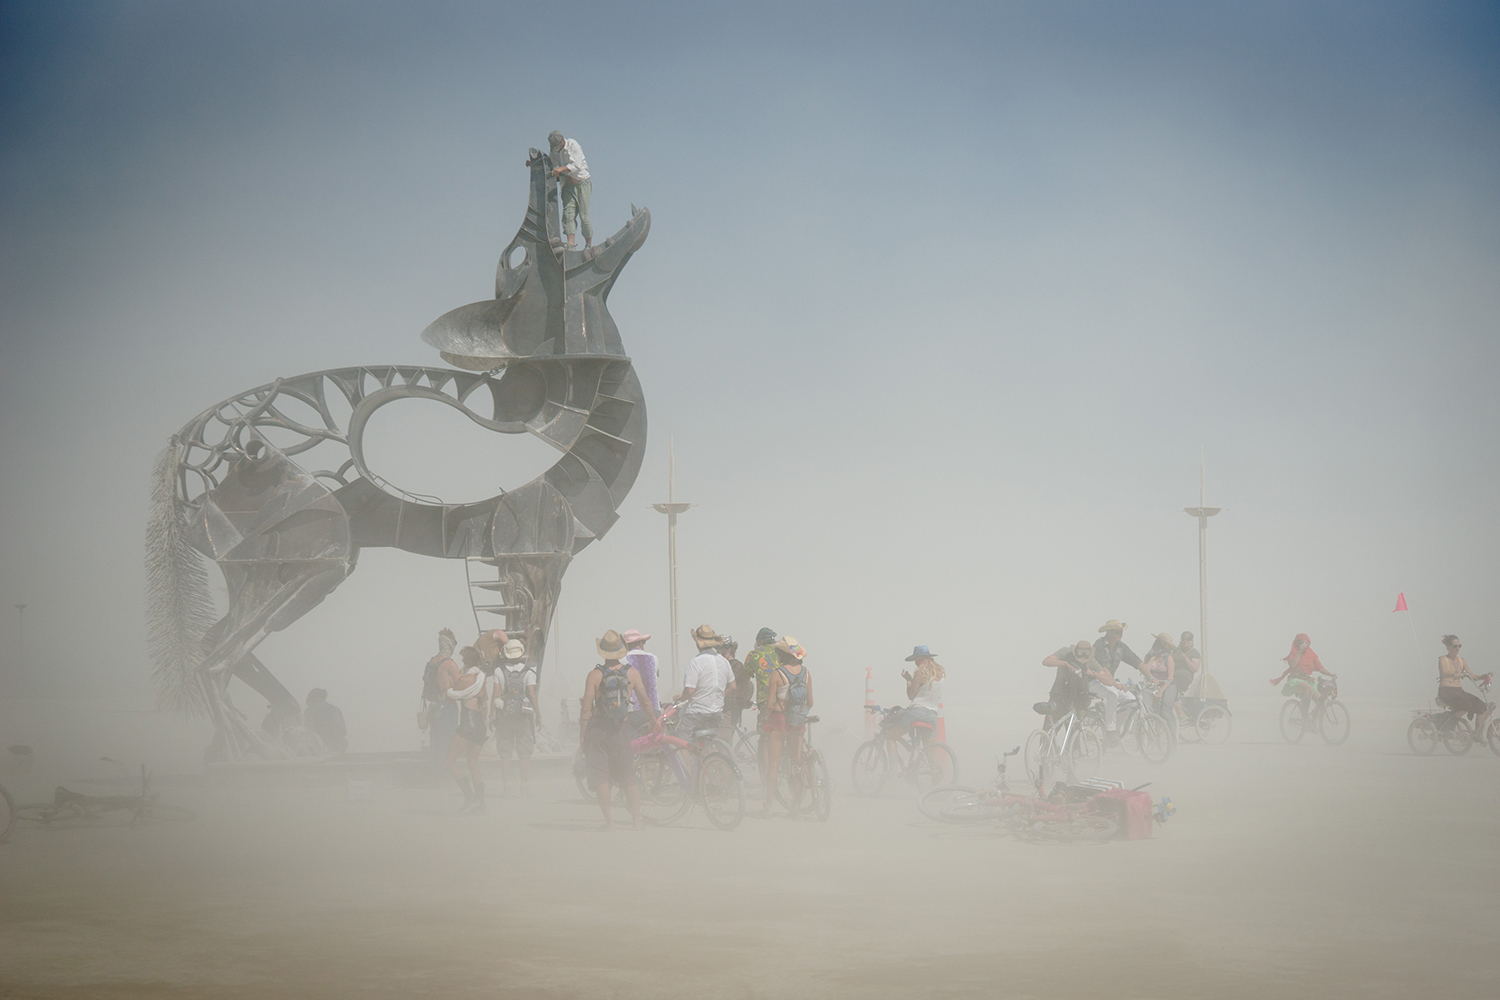 Coyote sculpture at Burning Man in 2013